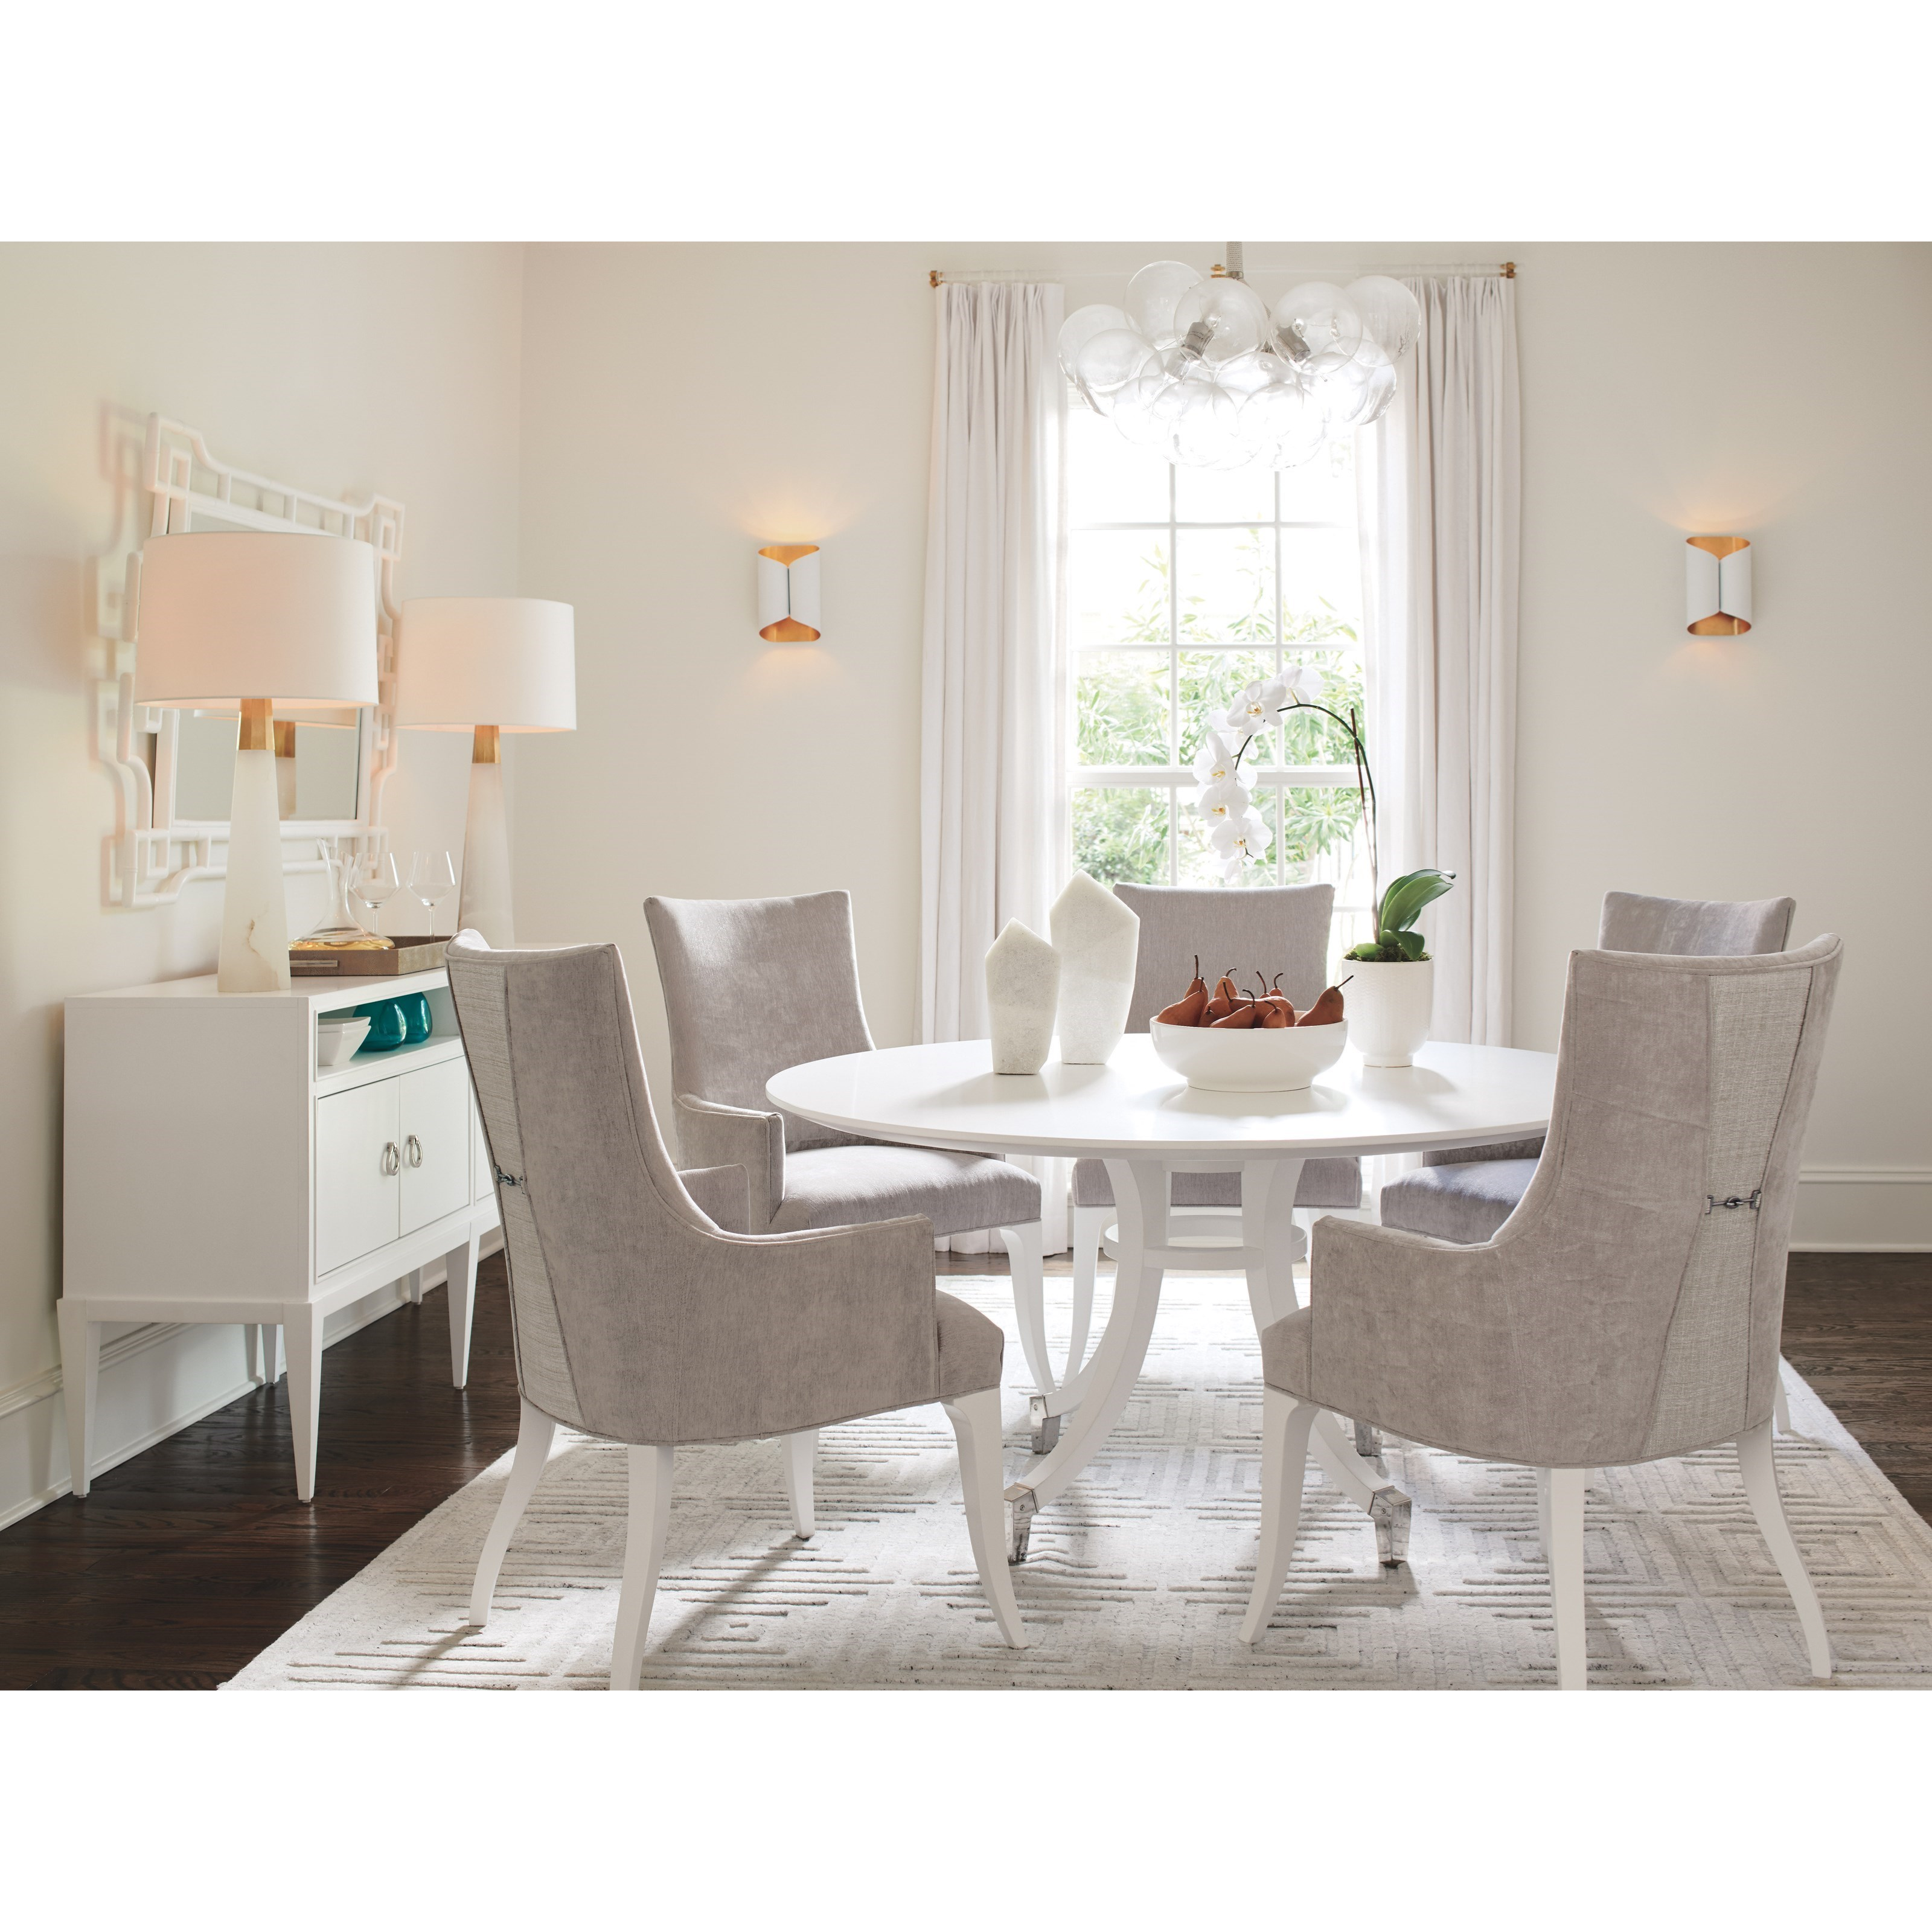 Avondale Casual Dining Room Group by Lexington at Baer's Furniture